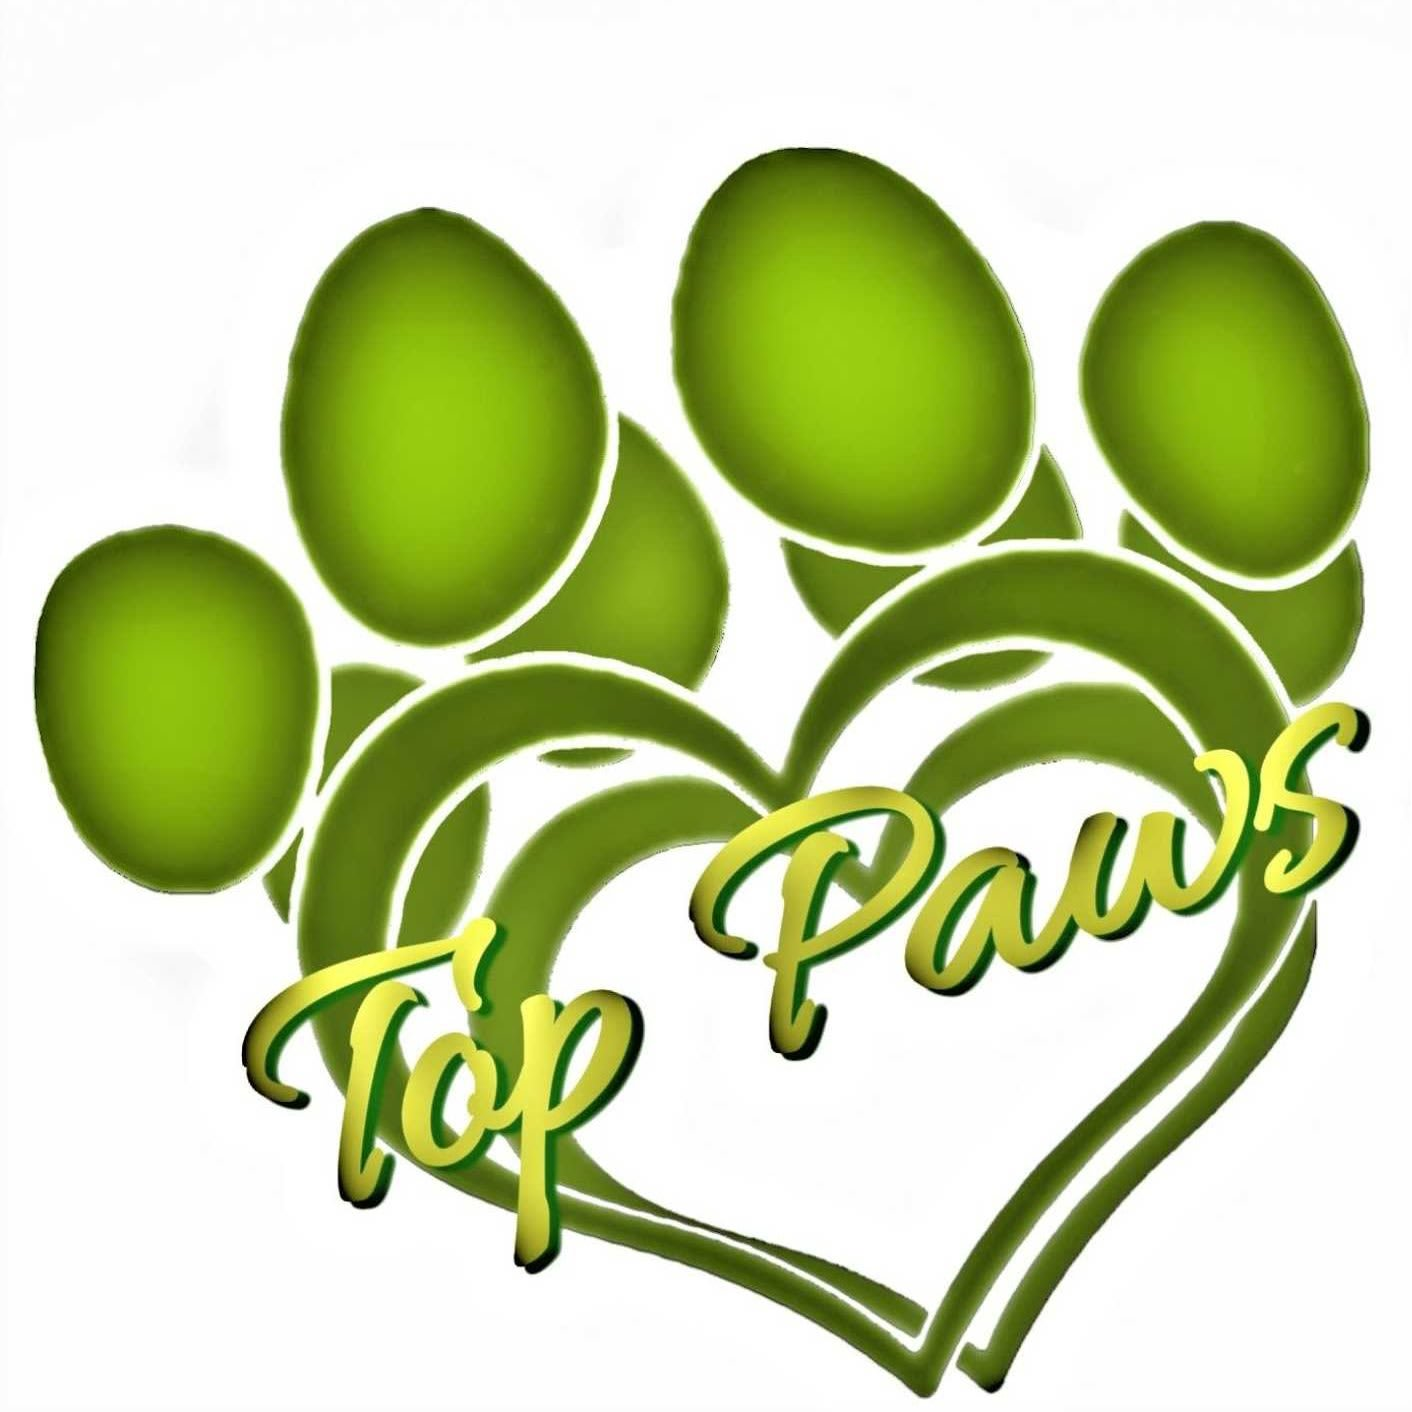 Top Paws Grooming Salon - London, London SE7 8DY - 07809 765308 | ShowMeLocal.com